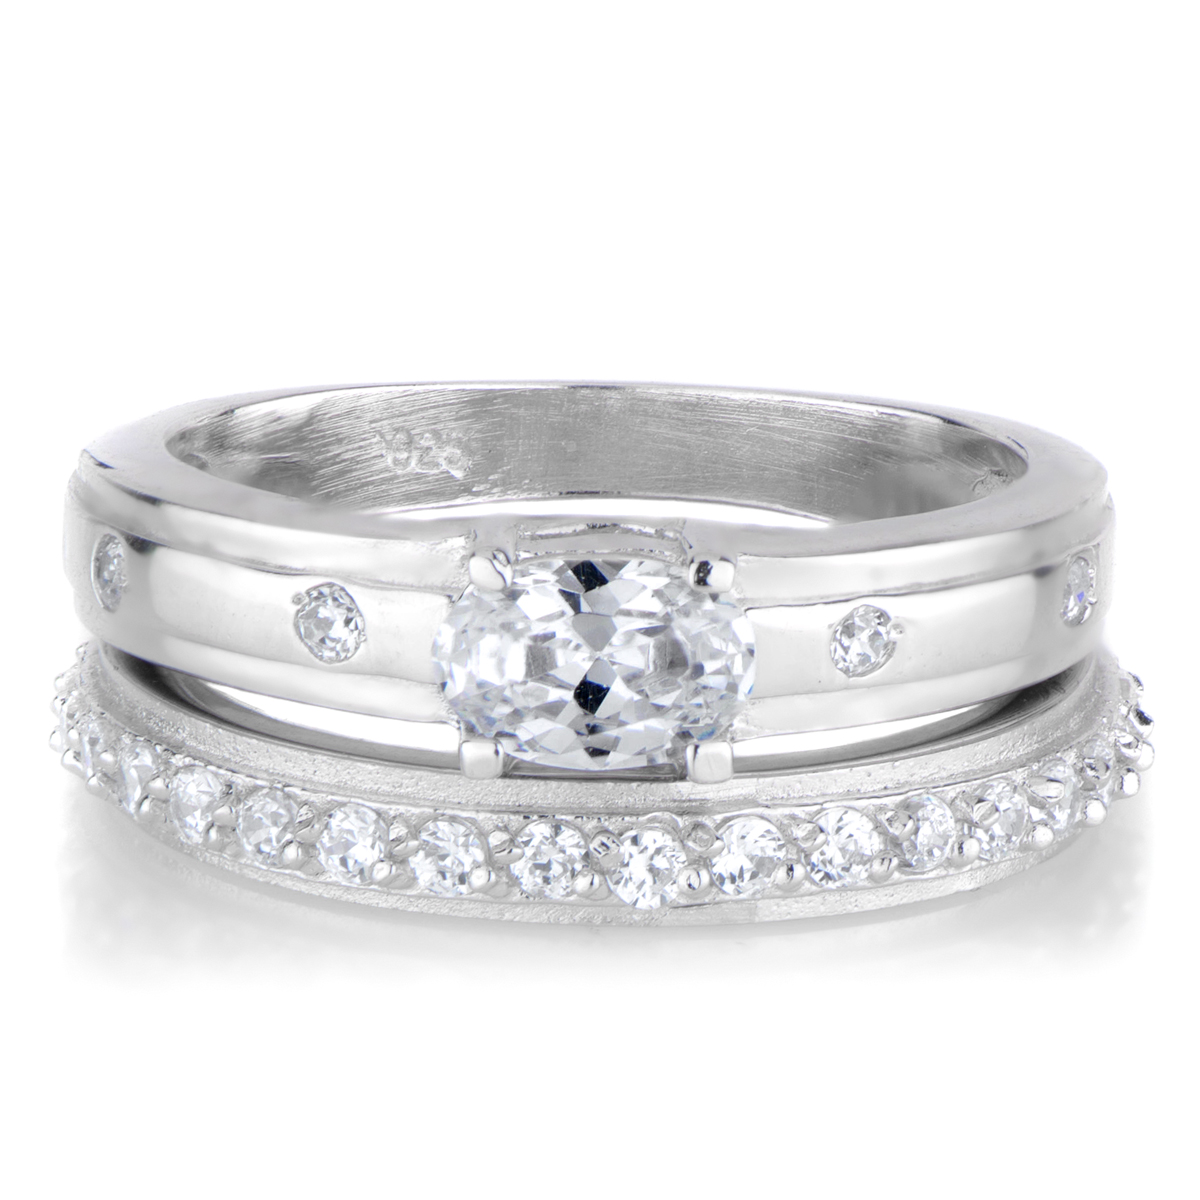 Find great deals on eBay for Kay Jewelers Wedding Ring in Diamond and Gemstone Wedding and Engagement Ring Sets. Shop with confidence.